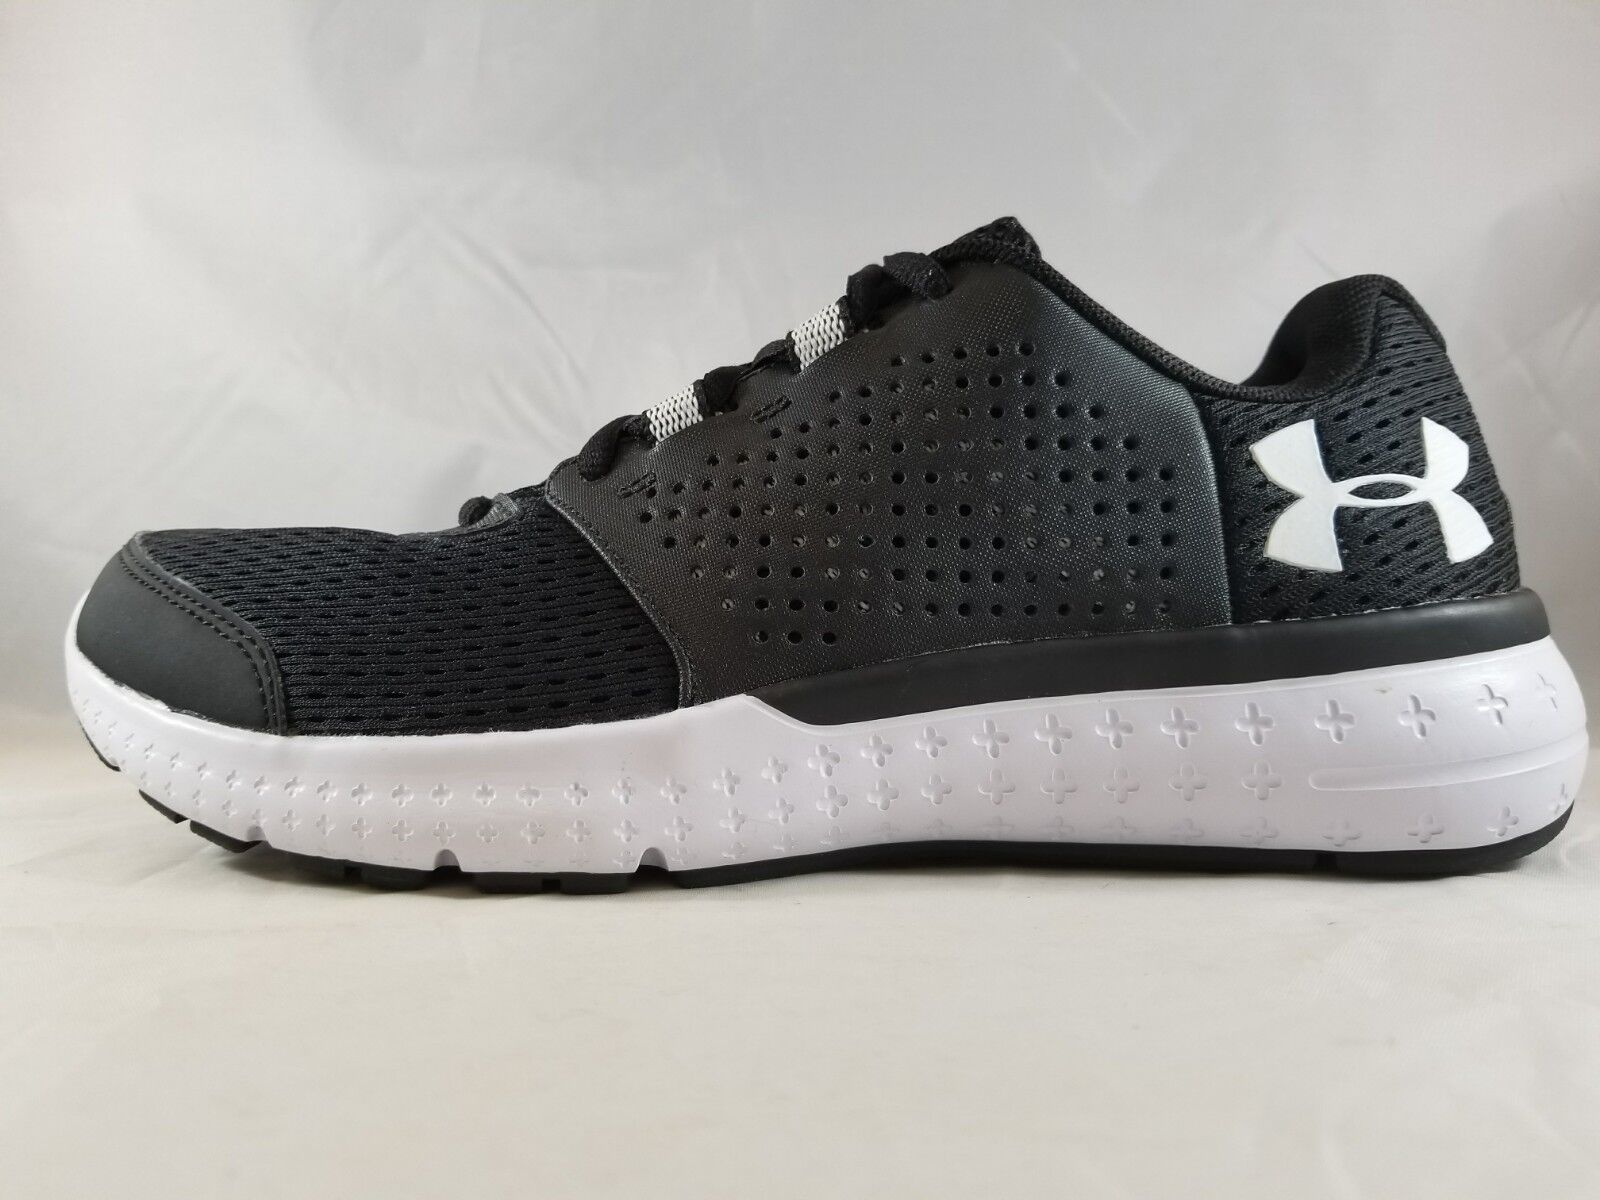 Under Armour Micro G Fuel RN Men's Running Shoe 1285670 001 Size 9.5